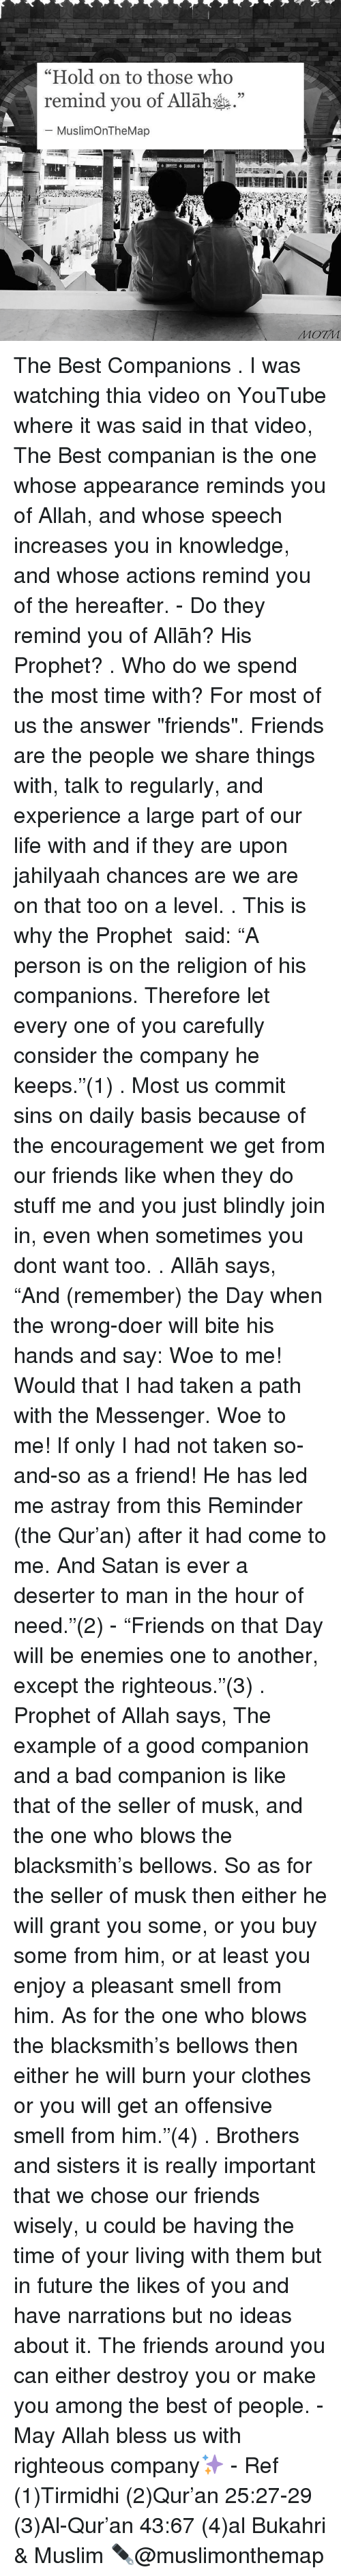 """the messengers: """"Hold on to those who  remind you of Allah  MuslimOnTheMap  MOTM The Best Companions . I was watching thia video on YouTube where it was said in that video, The Best companian is the one whose appearance reminds you of Allah, and whose speech increases you in knowledge, and whose actions remind you of the hereafter. - Do they remind you of Allāhﷻ? His Prophetﷺ? . Who do we spend the most time with? For most of us the answer """"friends"""". Friends are the people we share things with, talk to regularly, and experience a large part of our life with and if they are upon jahilyaah chances are we are on that too on a level. . This is why the Prophet ﷺ said: """"A person is on the religion of his companions. Therefore let every one of you carefully consider the company he keeps.""""(1) . Most us commit sins on daily basis because of the encouragement we get from our friends like when they do stuff me and you just blindly join in, even when sometimes you dont want too. . Allāhﷻ says, """"And (remember) the Day when the wrong-doer will bite his hands and say: Woe to me! Would that I had taken a path with the Messenger. Woe to me! If only I had not taken so- and-so as a friend! He has led me astray from this Reminder (the Qur'an) after it had come to me. And Satan is ever a deserter to man in the hour of need.""""(2) - """"Friends on that Day will be enemies one to another, except the righteous.""""(3) . Prophet of Allahﷺ says, The example of a good companion and a bad companion is like that of the seller of musk, and the one who blows the blacksmith's bellows. So as for the seller of musk then either he will grant you some, or you buy some from him, or at least you enjoy a pleasant smell from him. As for the one who blows the blacksmith's bellows then either he will burn your clothes or you will get an offensive smell from him.""""(4) . Brothers and sisters it is really important that we chose our friends wisely, u could be having the time of your living with them but in future the l"""